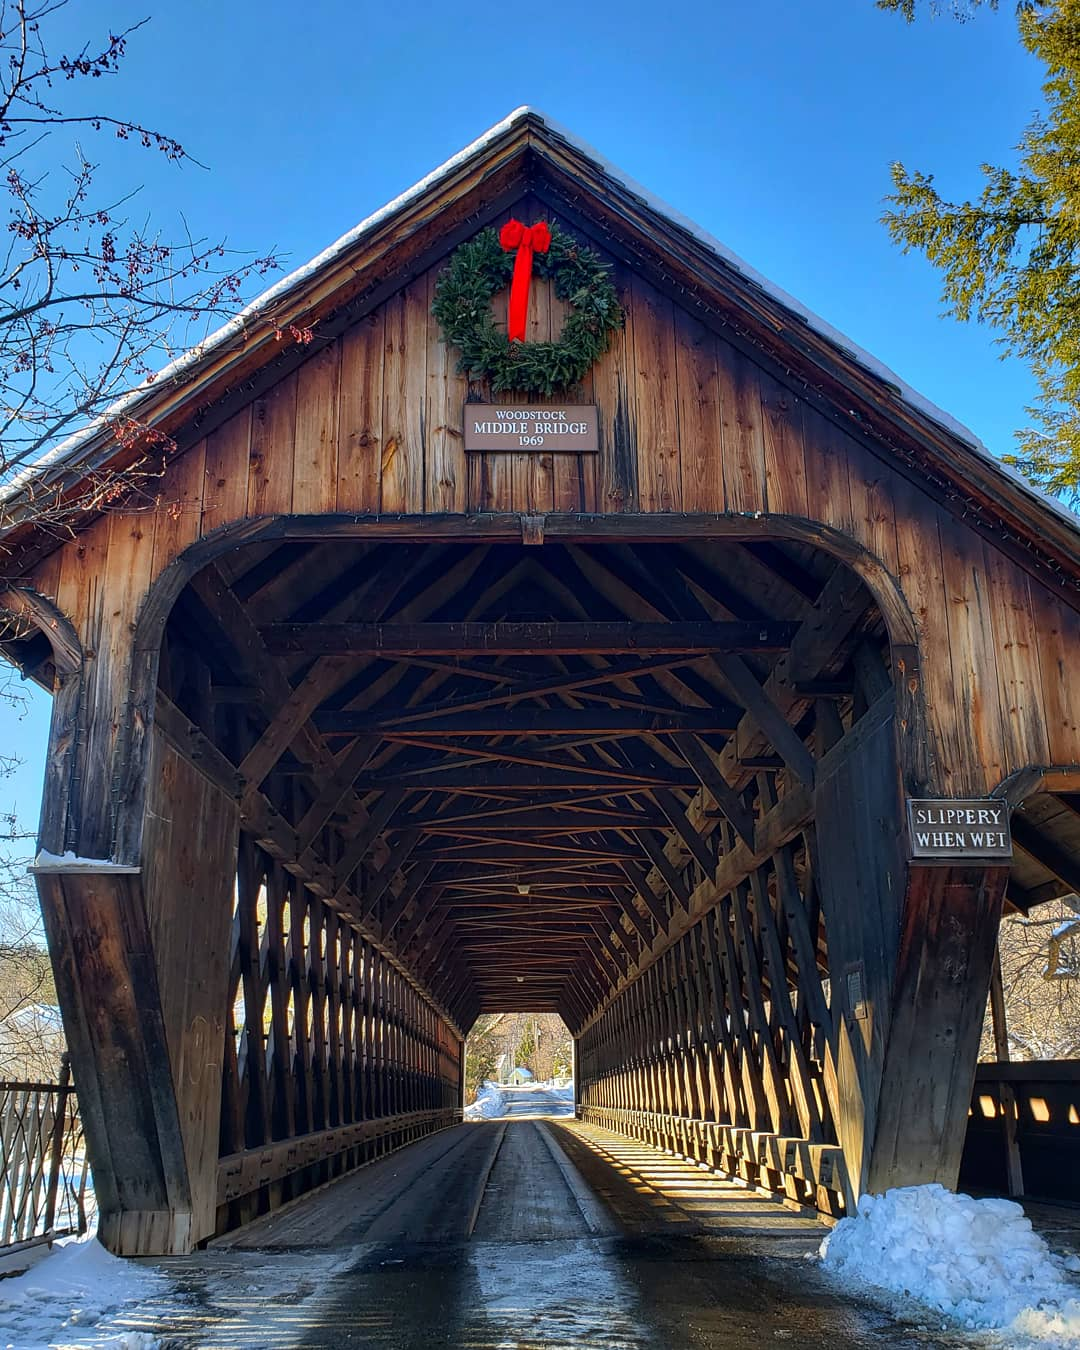 Middle Bridge in Woodstock, VT is right off the green, across the street from the Woodstock Inn & Resort